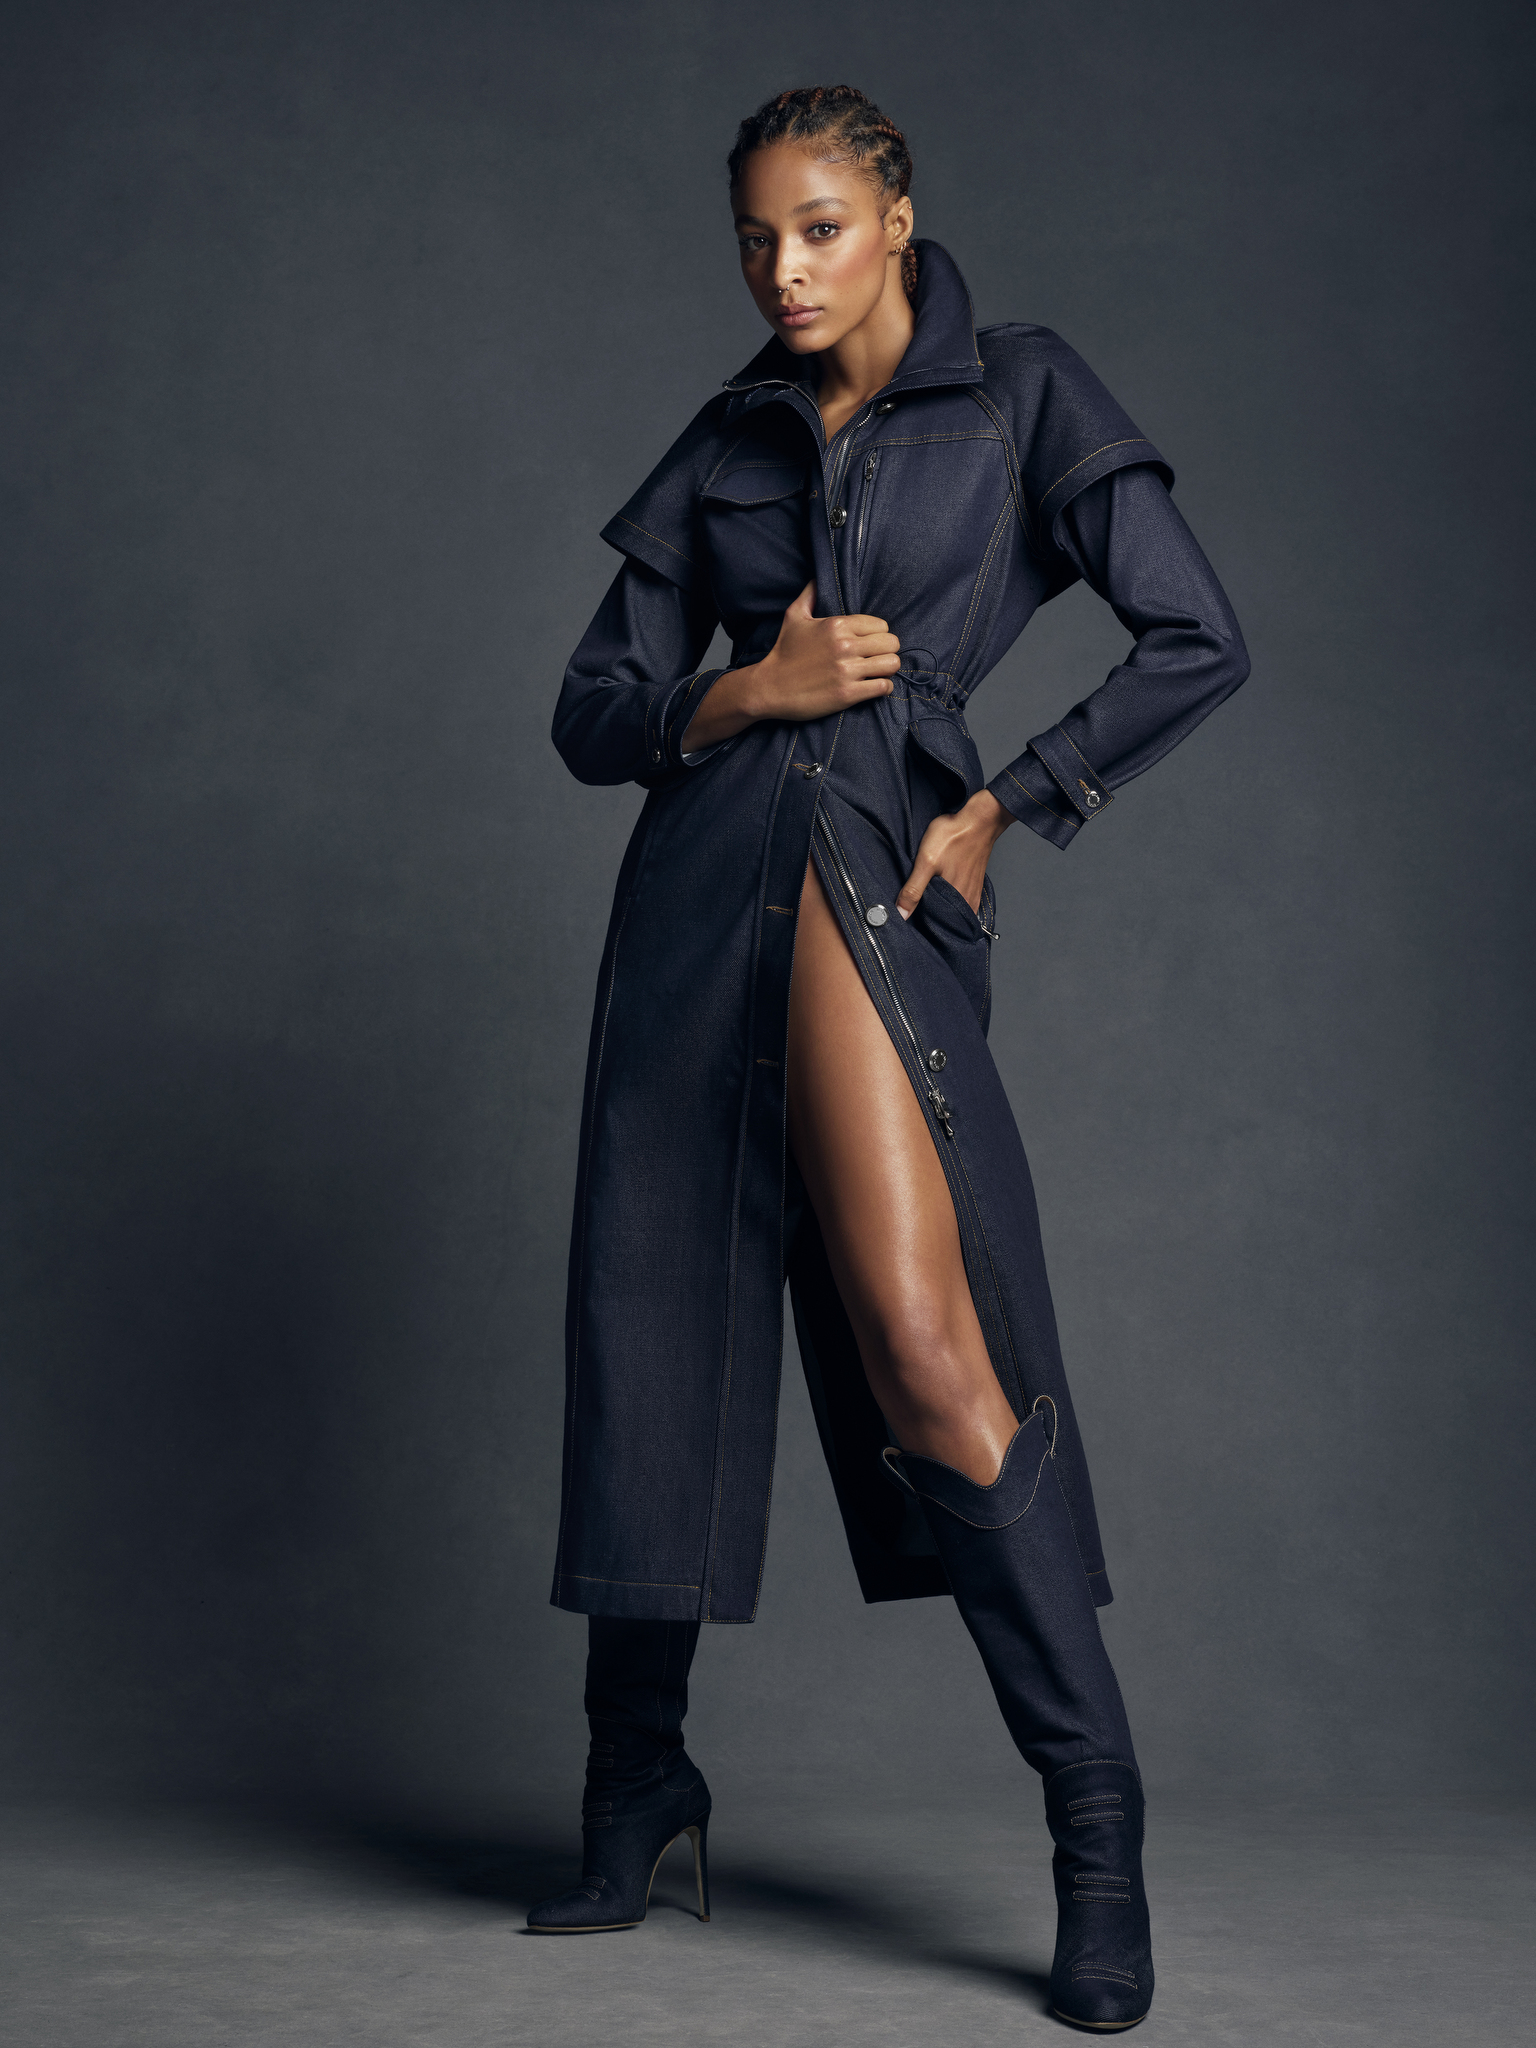 Maxwell's Anniversary Collection is based on denim.